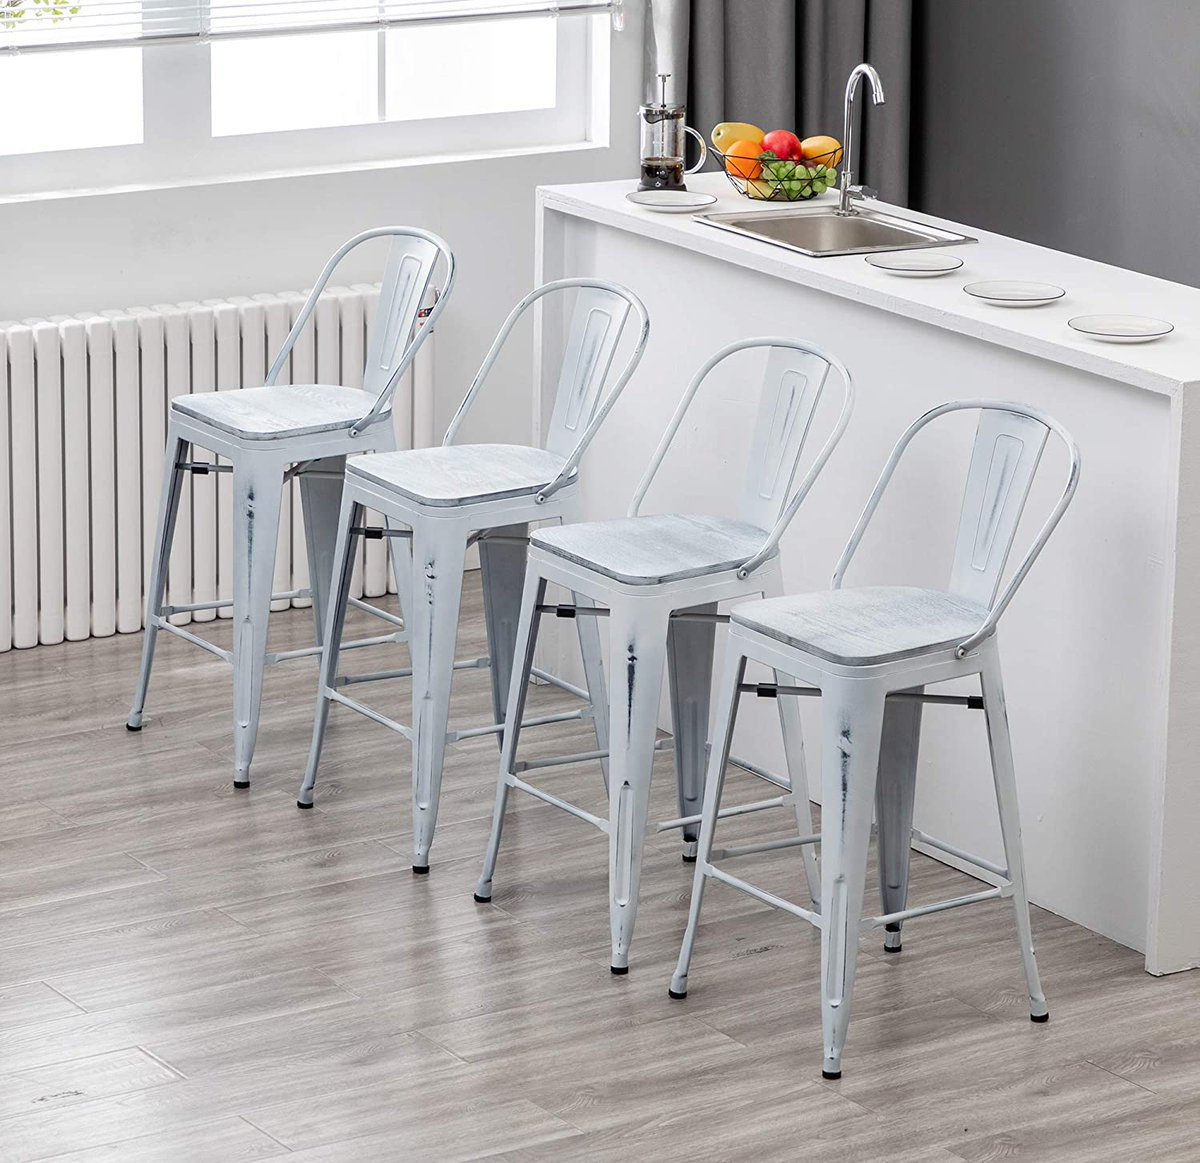 Sharing #distressed #white #highback #bar #stool for #home #kitchen  #Amazon👉 #homesweethome #moderndesign #Christmas #blog #design #furniture #barstool #industrial #chairs #MondayThoughts #MondayFeeling #MondayMotivation #Mondaymorning #MondayVibes